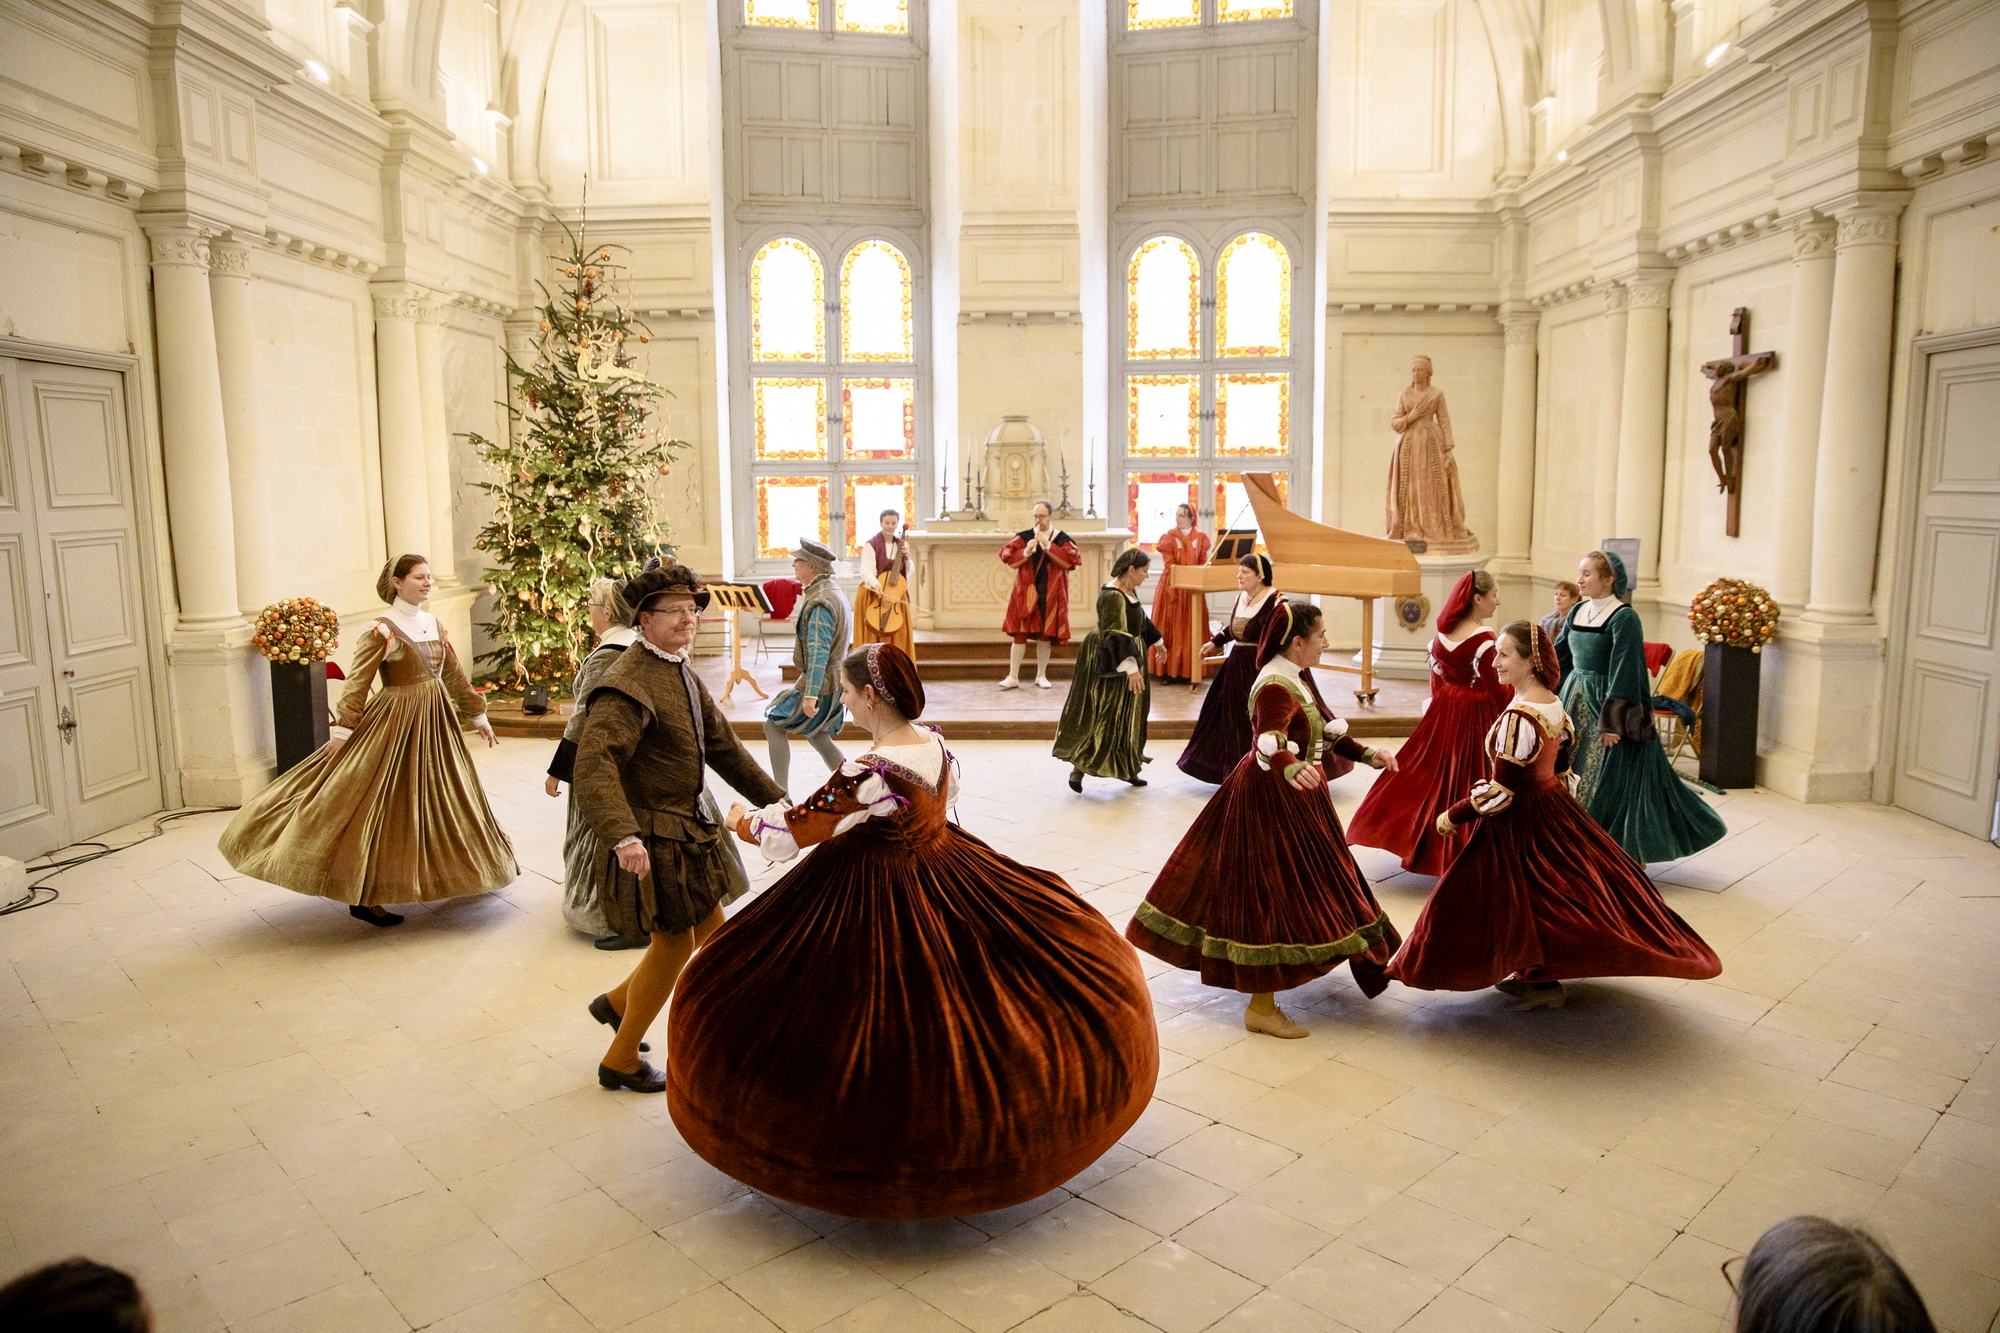 Christmas activities in the Château of Chambord